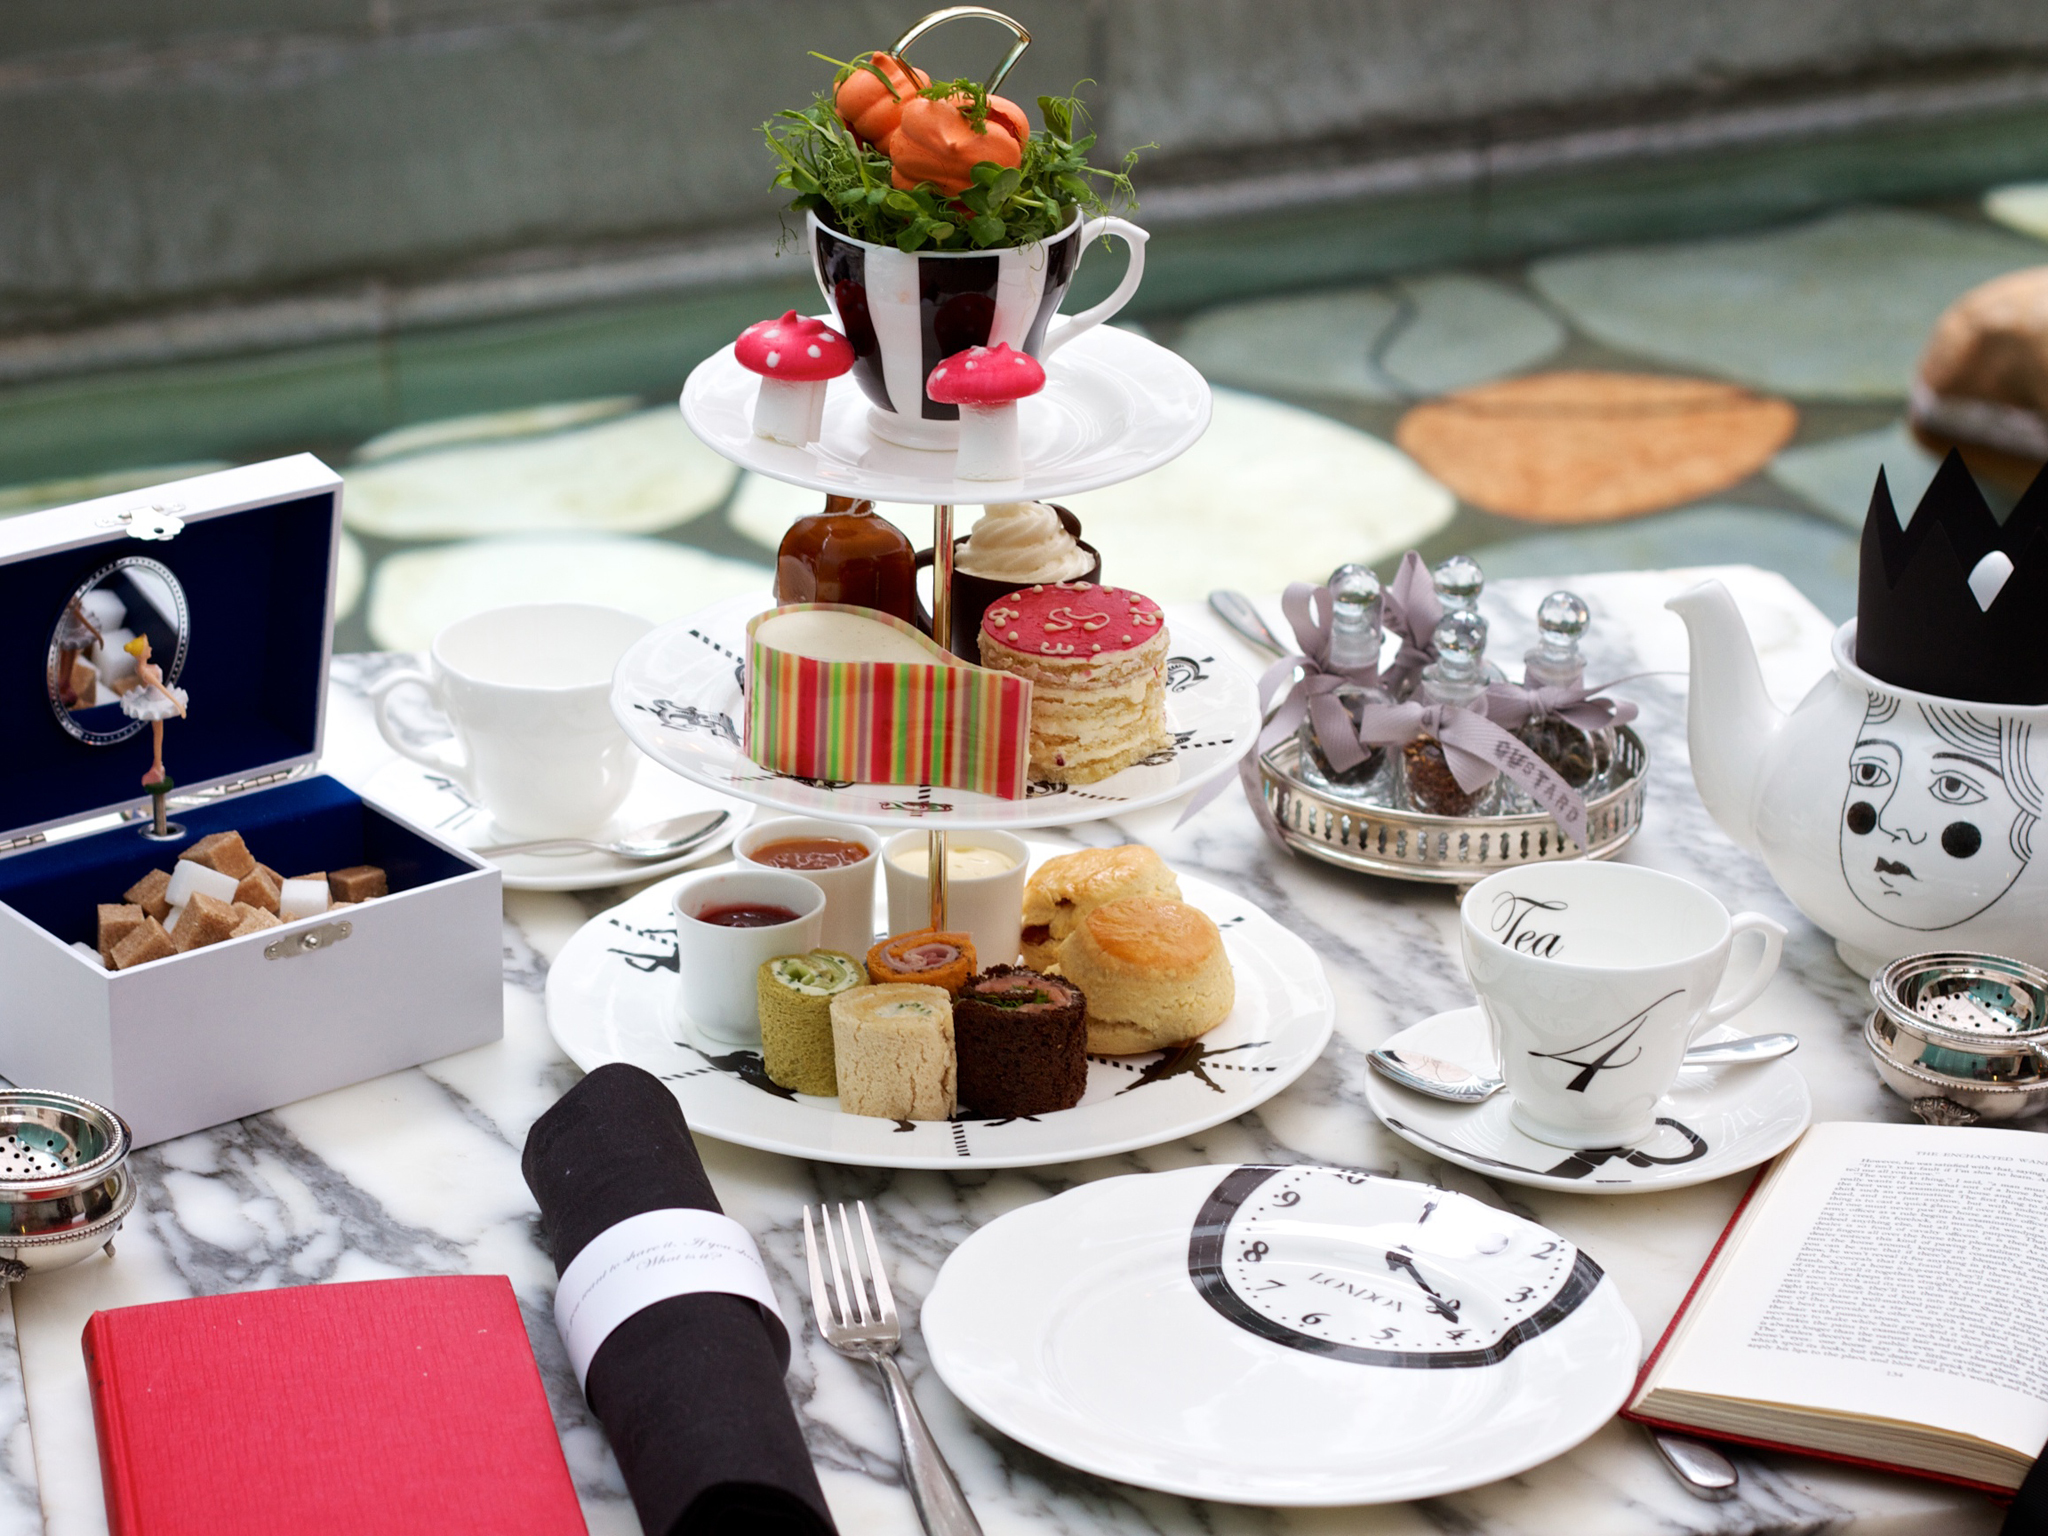 Mad Hatters Afternoon Tea at the Courtyard at the Sanderson